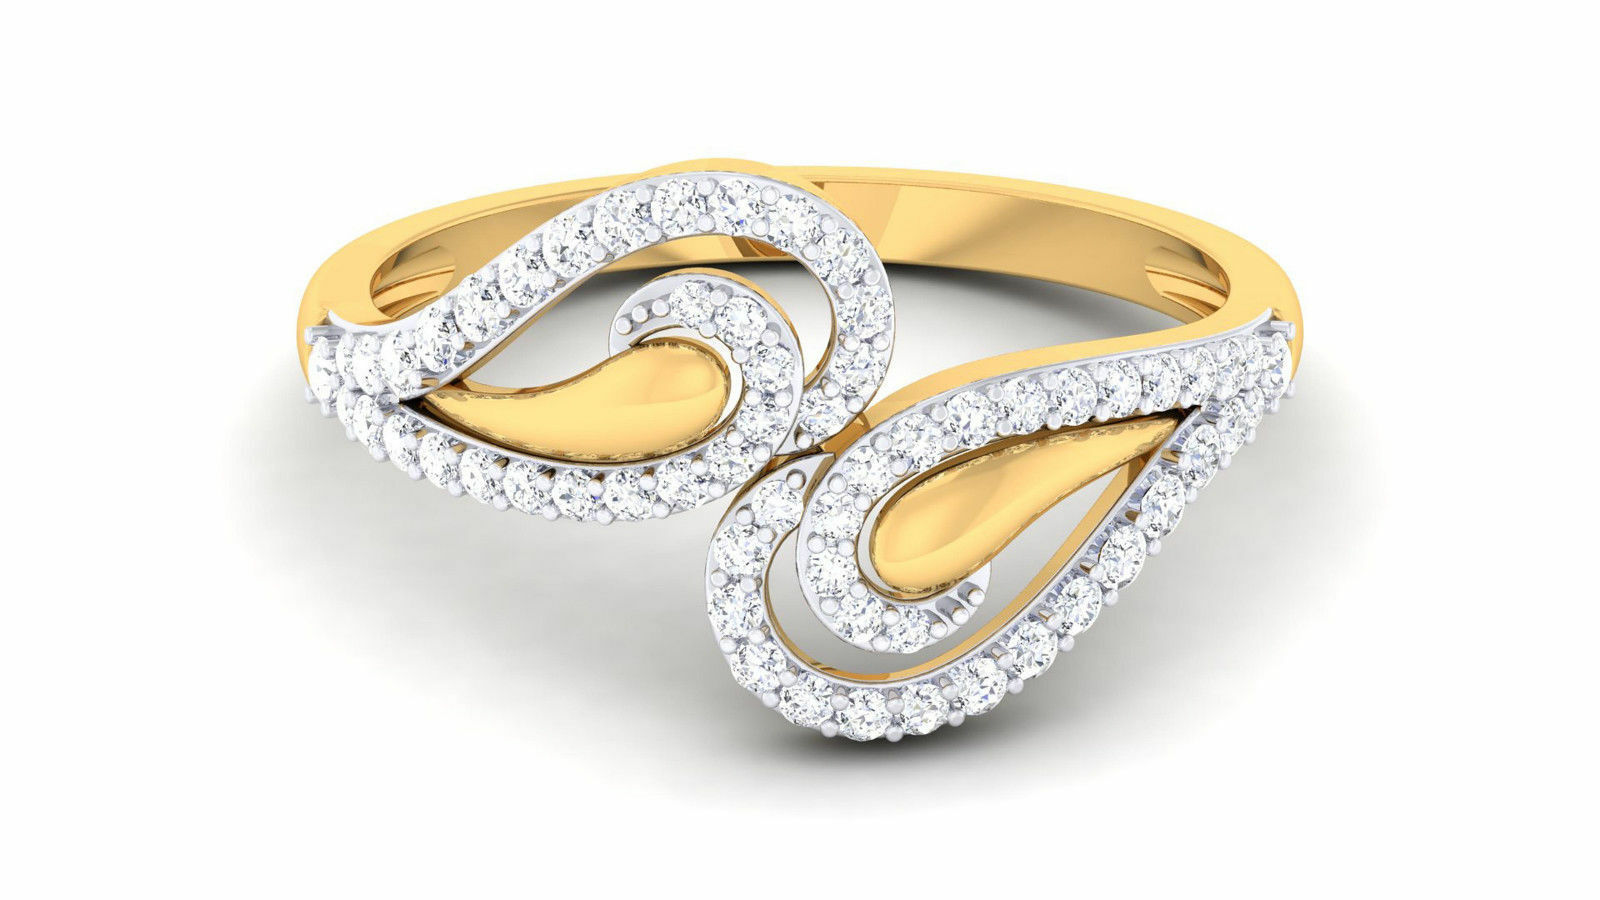 0.63 Cts Round Brilliant Cut Diamonds Engagement Ring In Solid Hallmark 18K gold